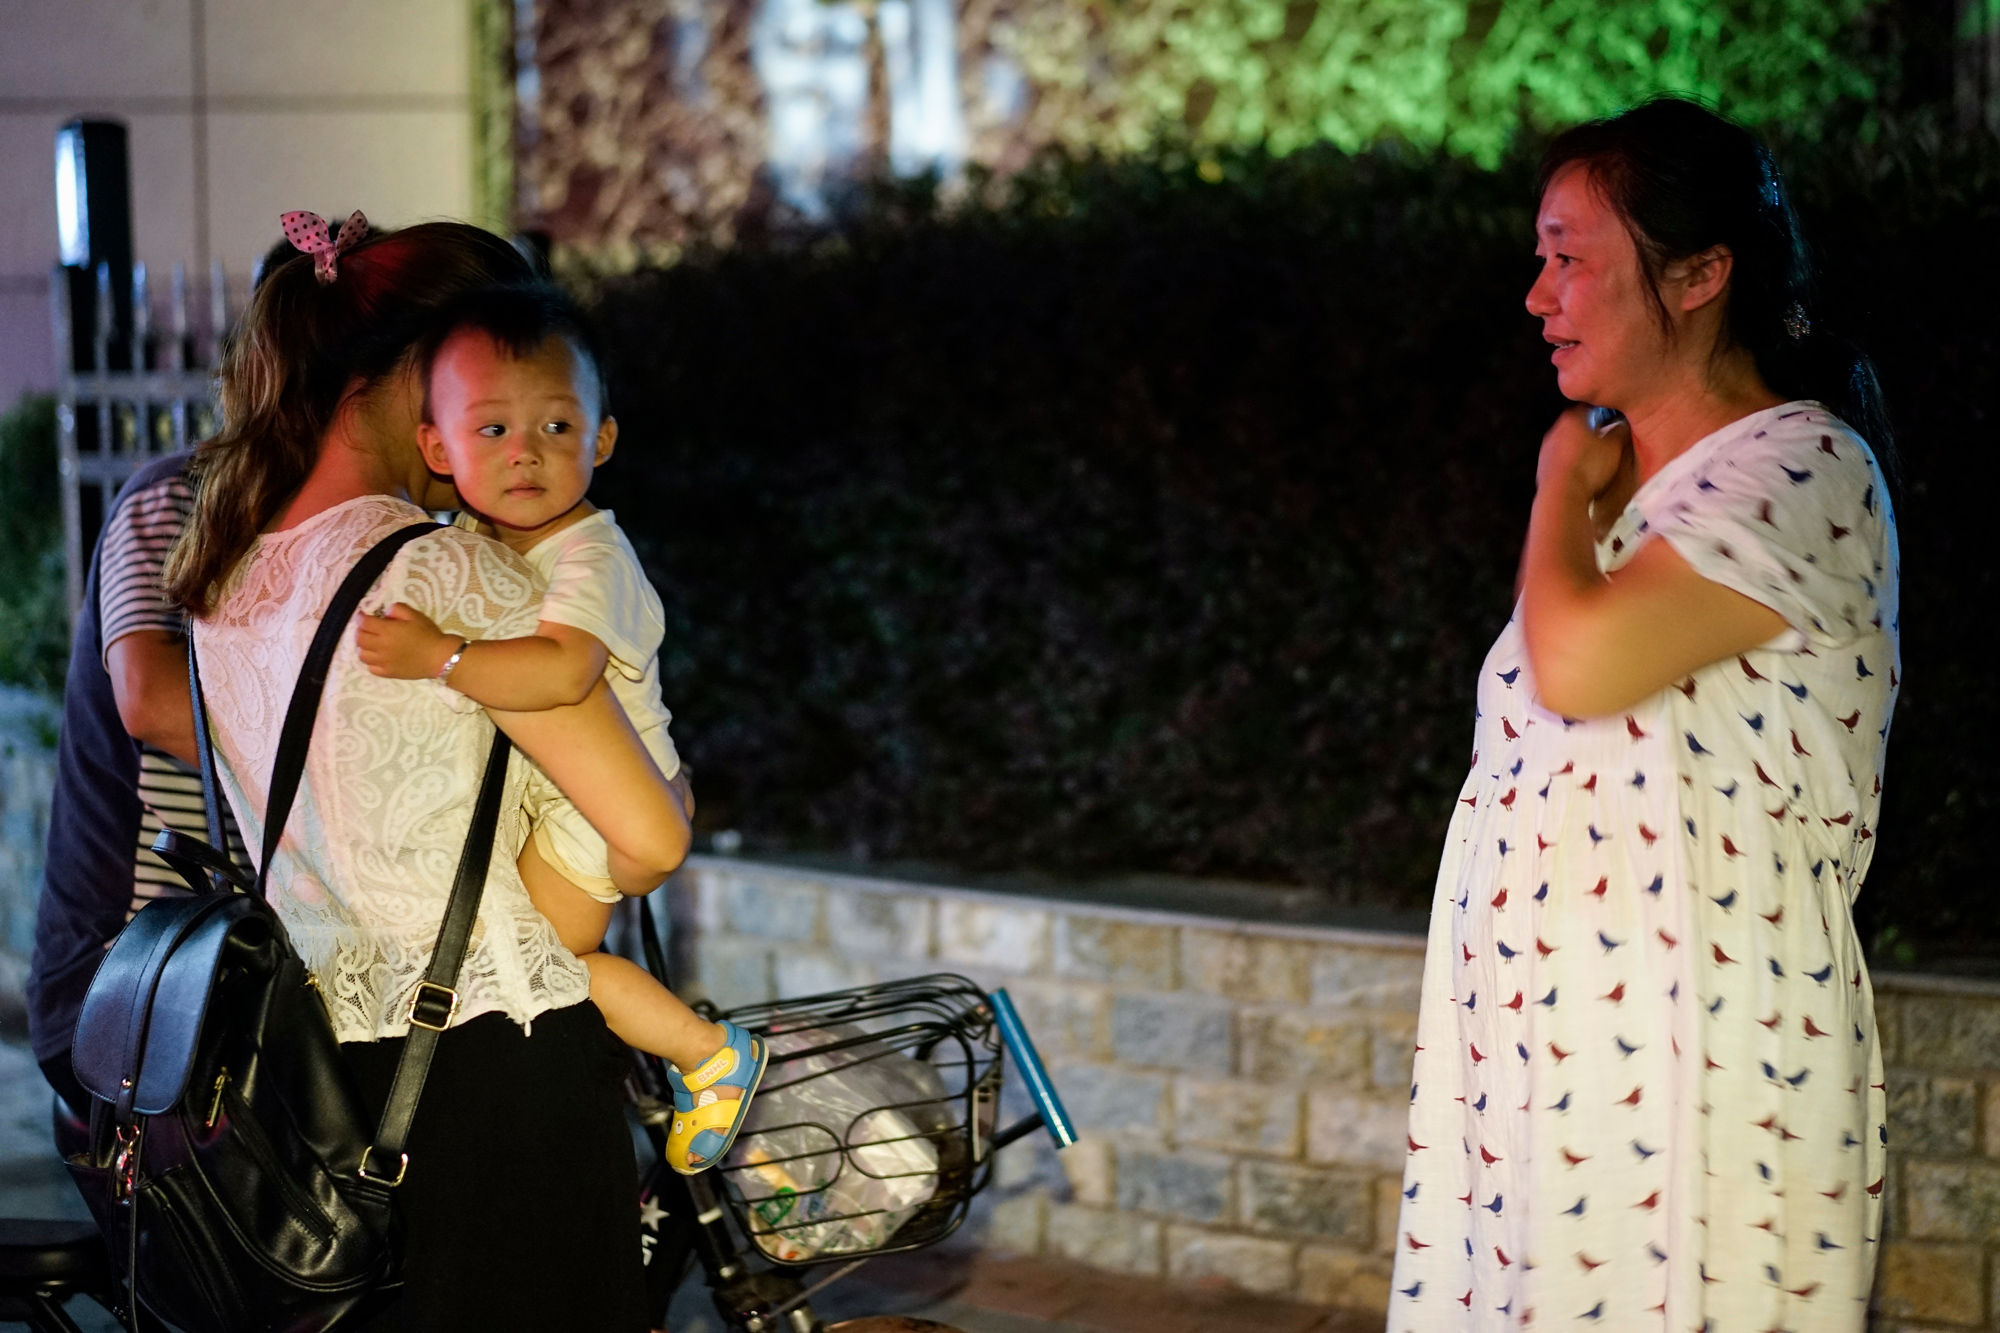 Zhiying and her nephew's wife chat about pregnancy and birth in Suizhou, August 9, 2017.